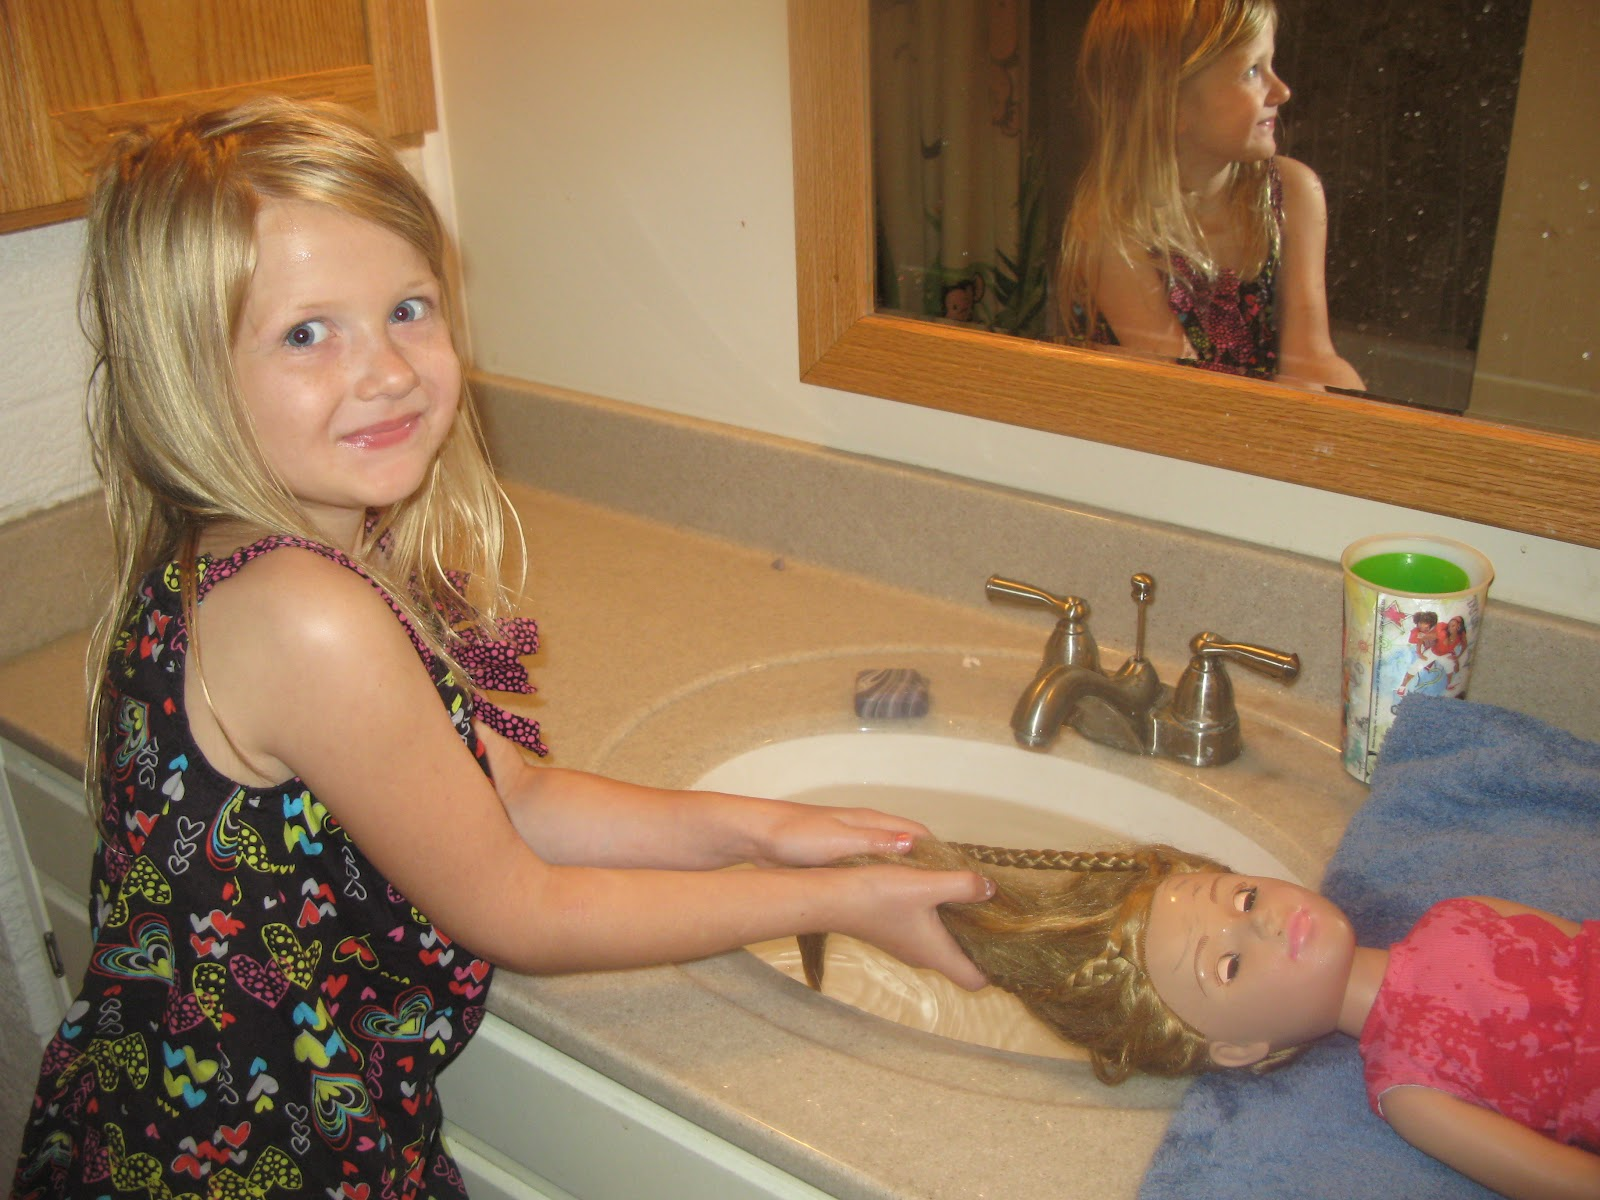 I Had Just Washed Her Hair In The Kitchen Sink, Laying Down On A Towel.  Then She Washed Her Doll Laurau0027s Hair The Same Way In The ...